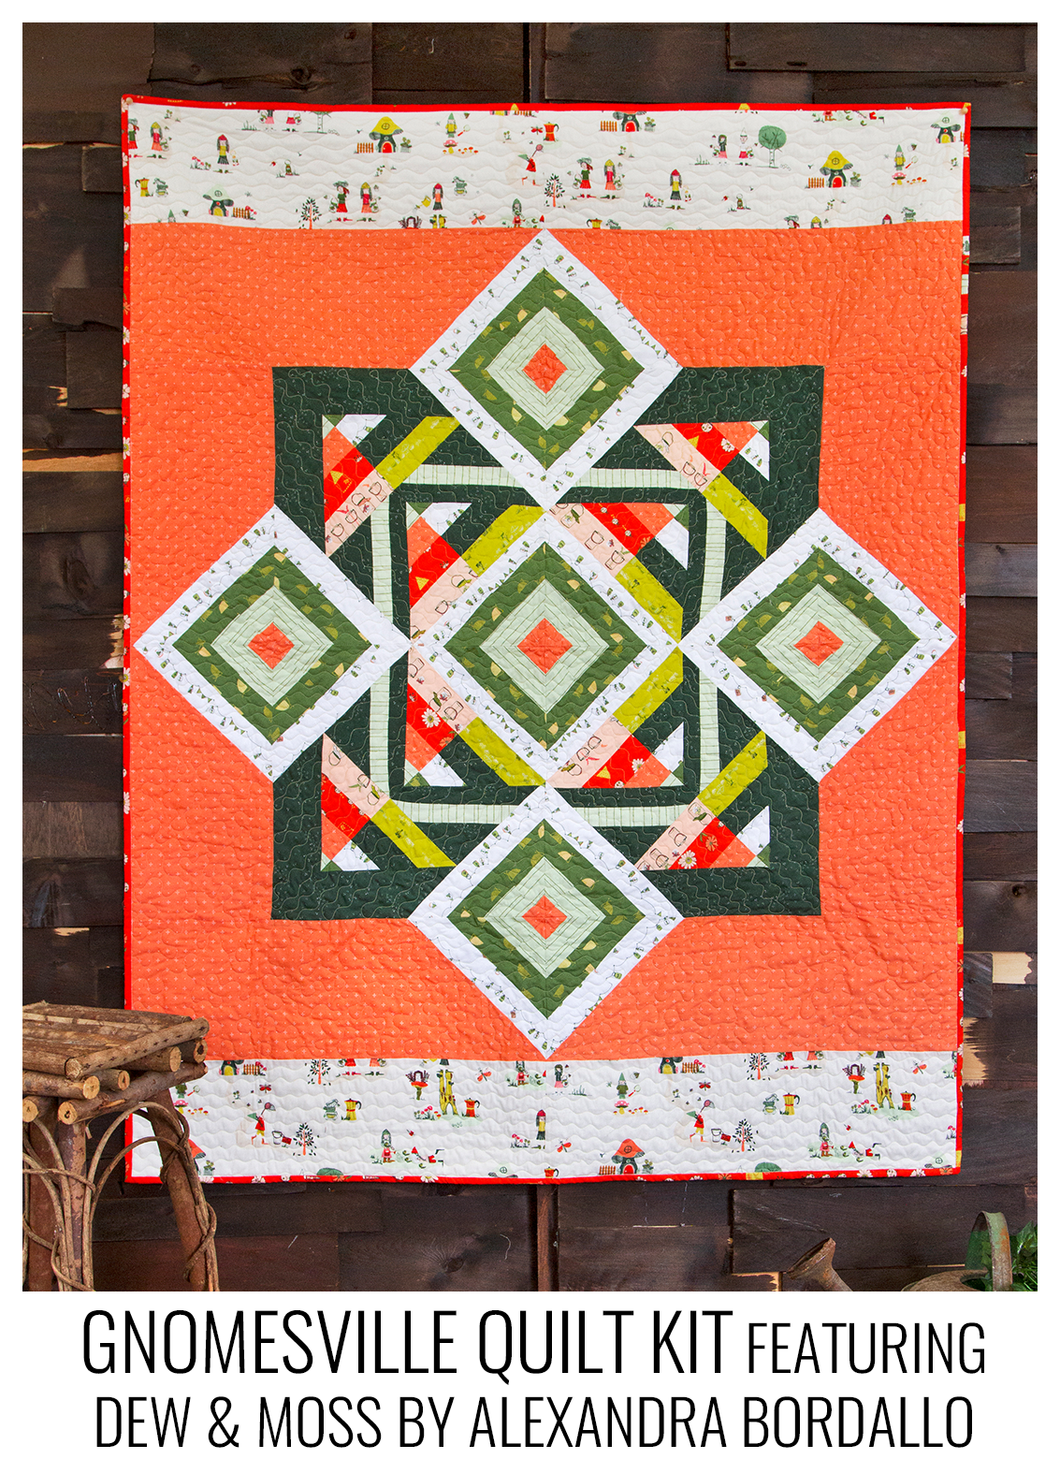 Gnomesville Quilt Kit